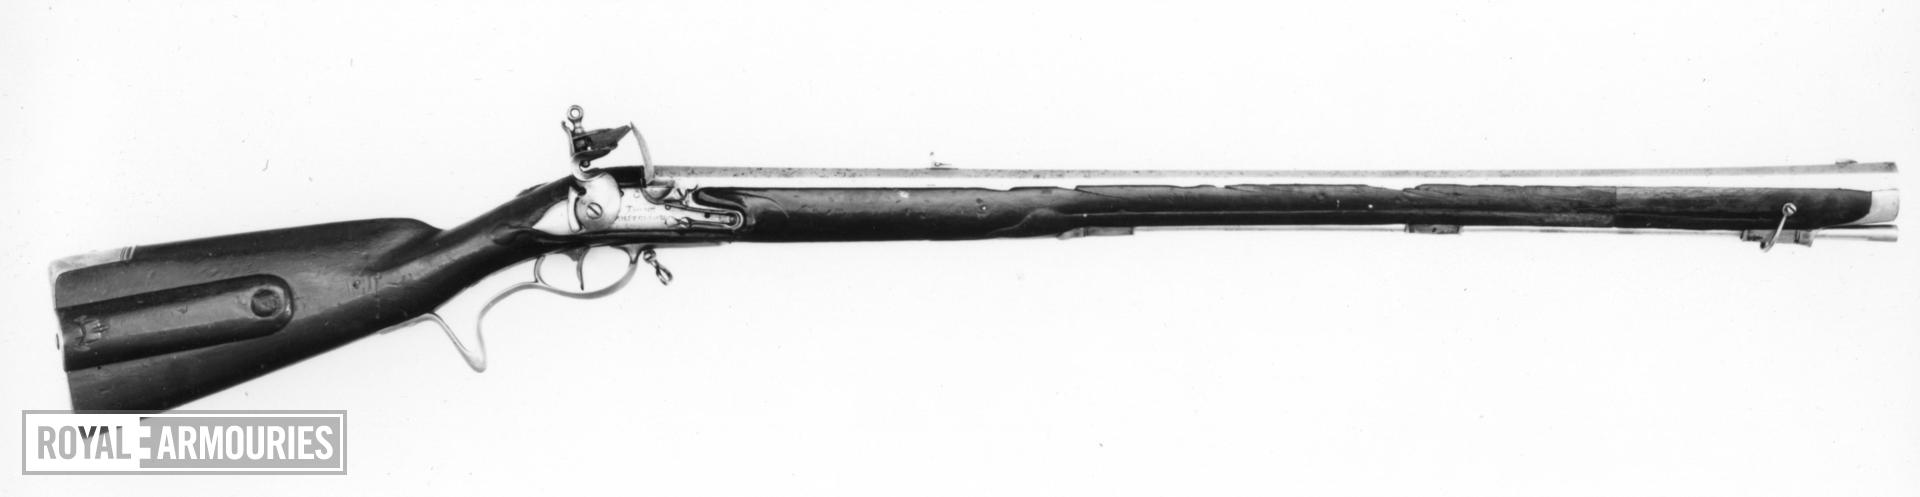 Flintlock muzzle-loading rifle - By Thome